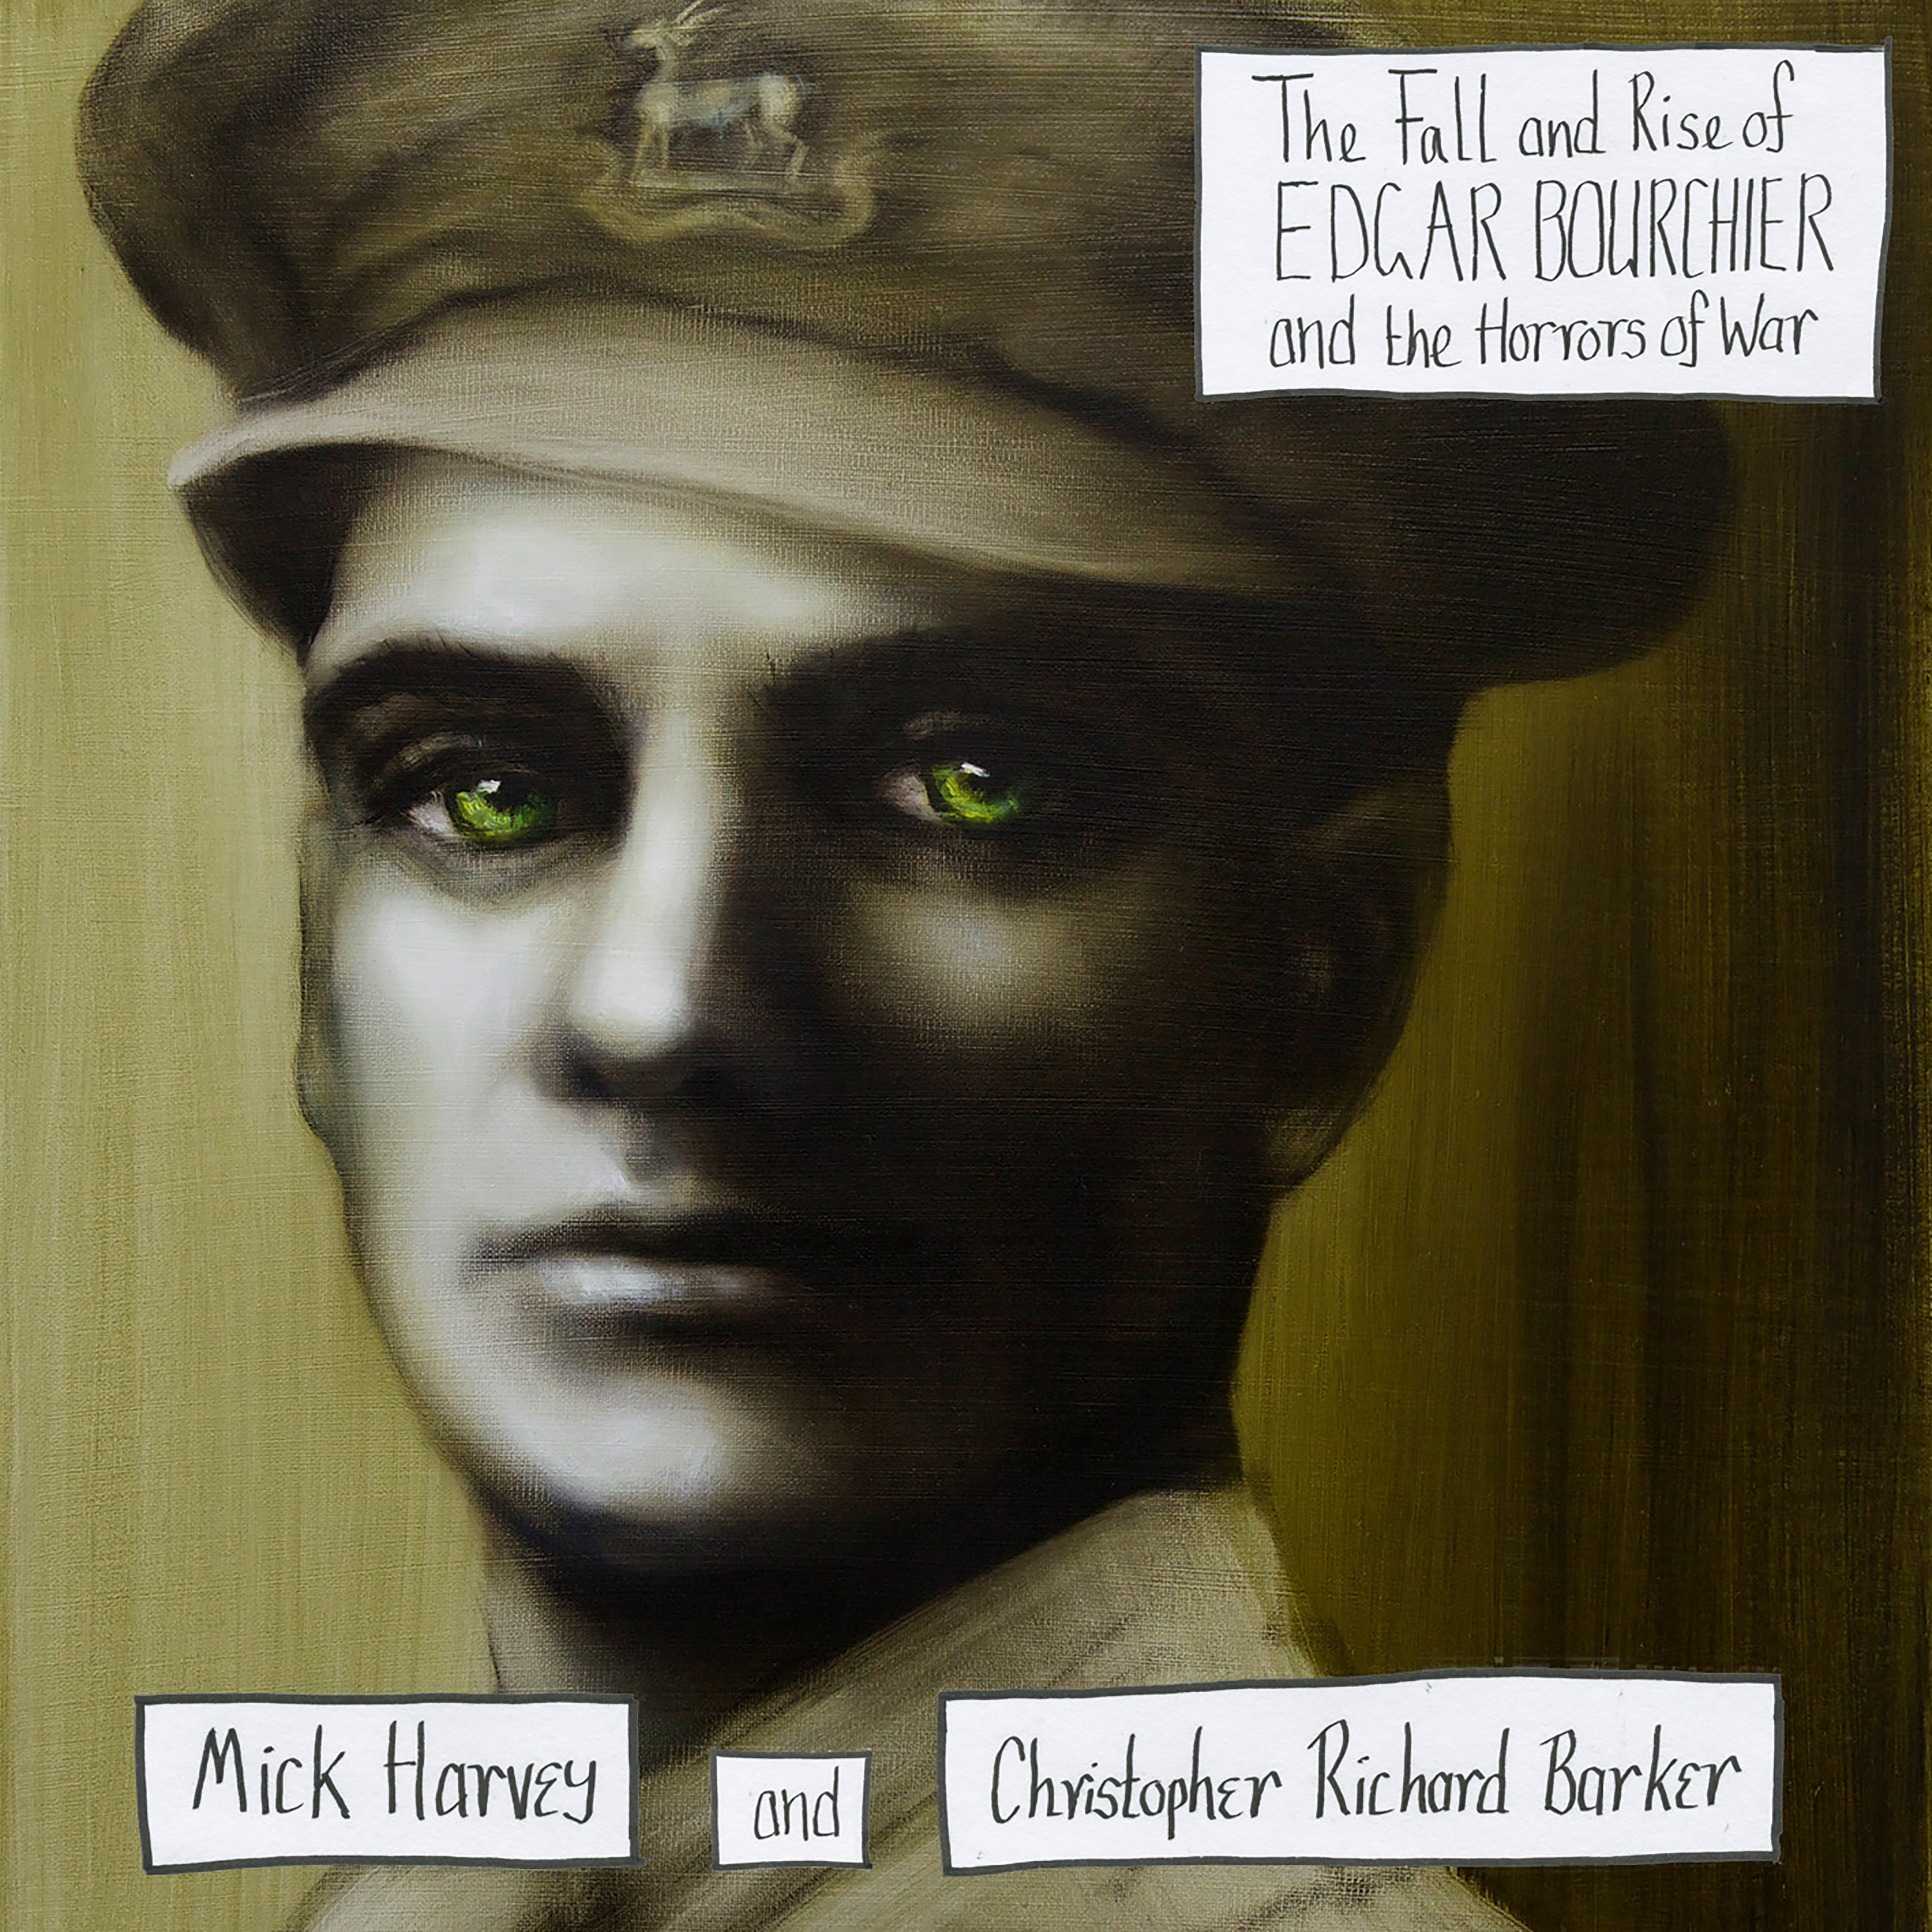 Mick Harvey + Christopher Richard Barker - The Fall and Rise of Edgar Bourchier and the Horrors of War - Mick Harvey